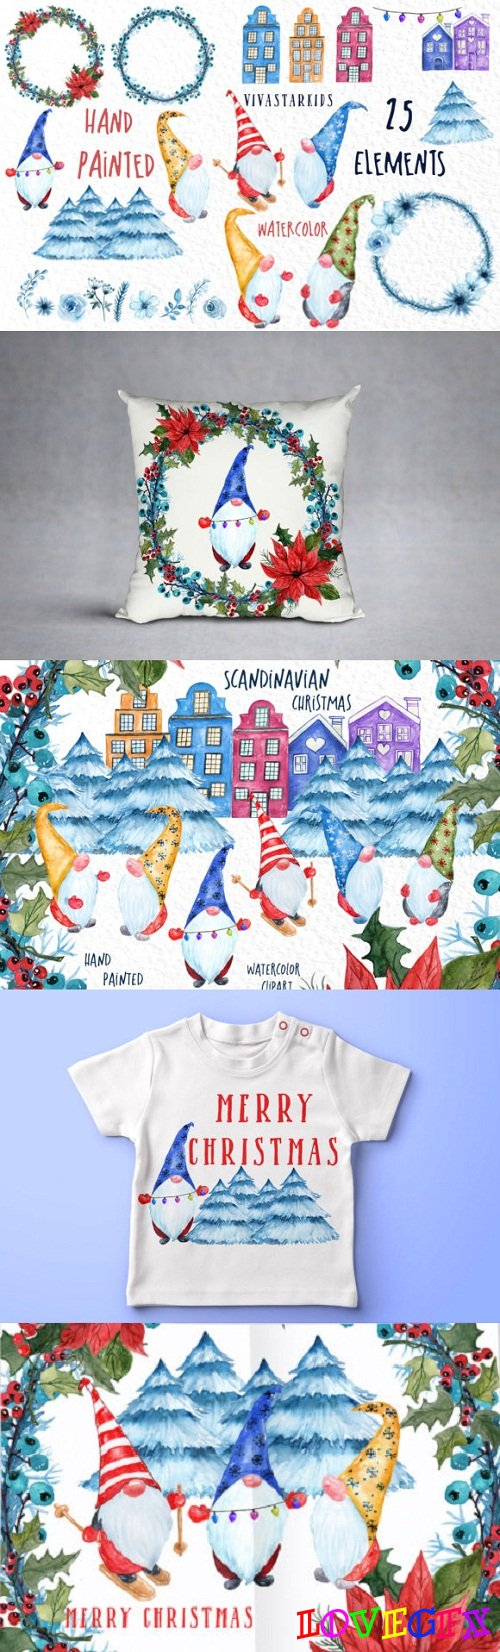 Scandinavian Christmas Gnomes - 3128426